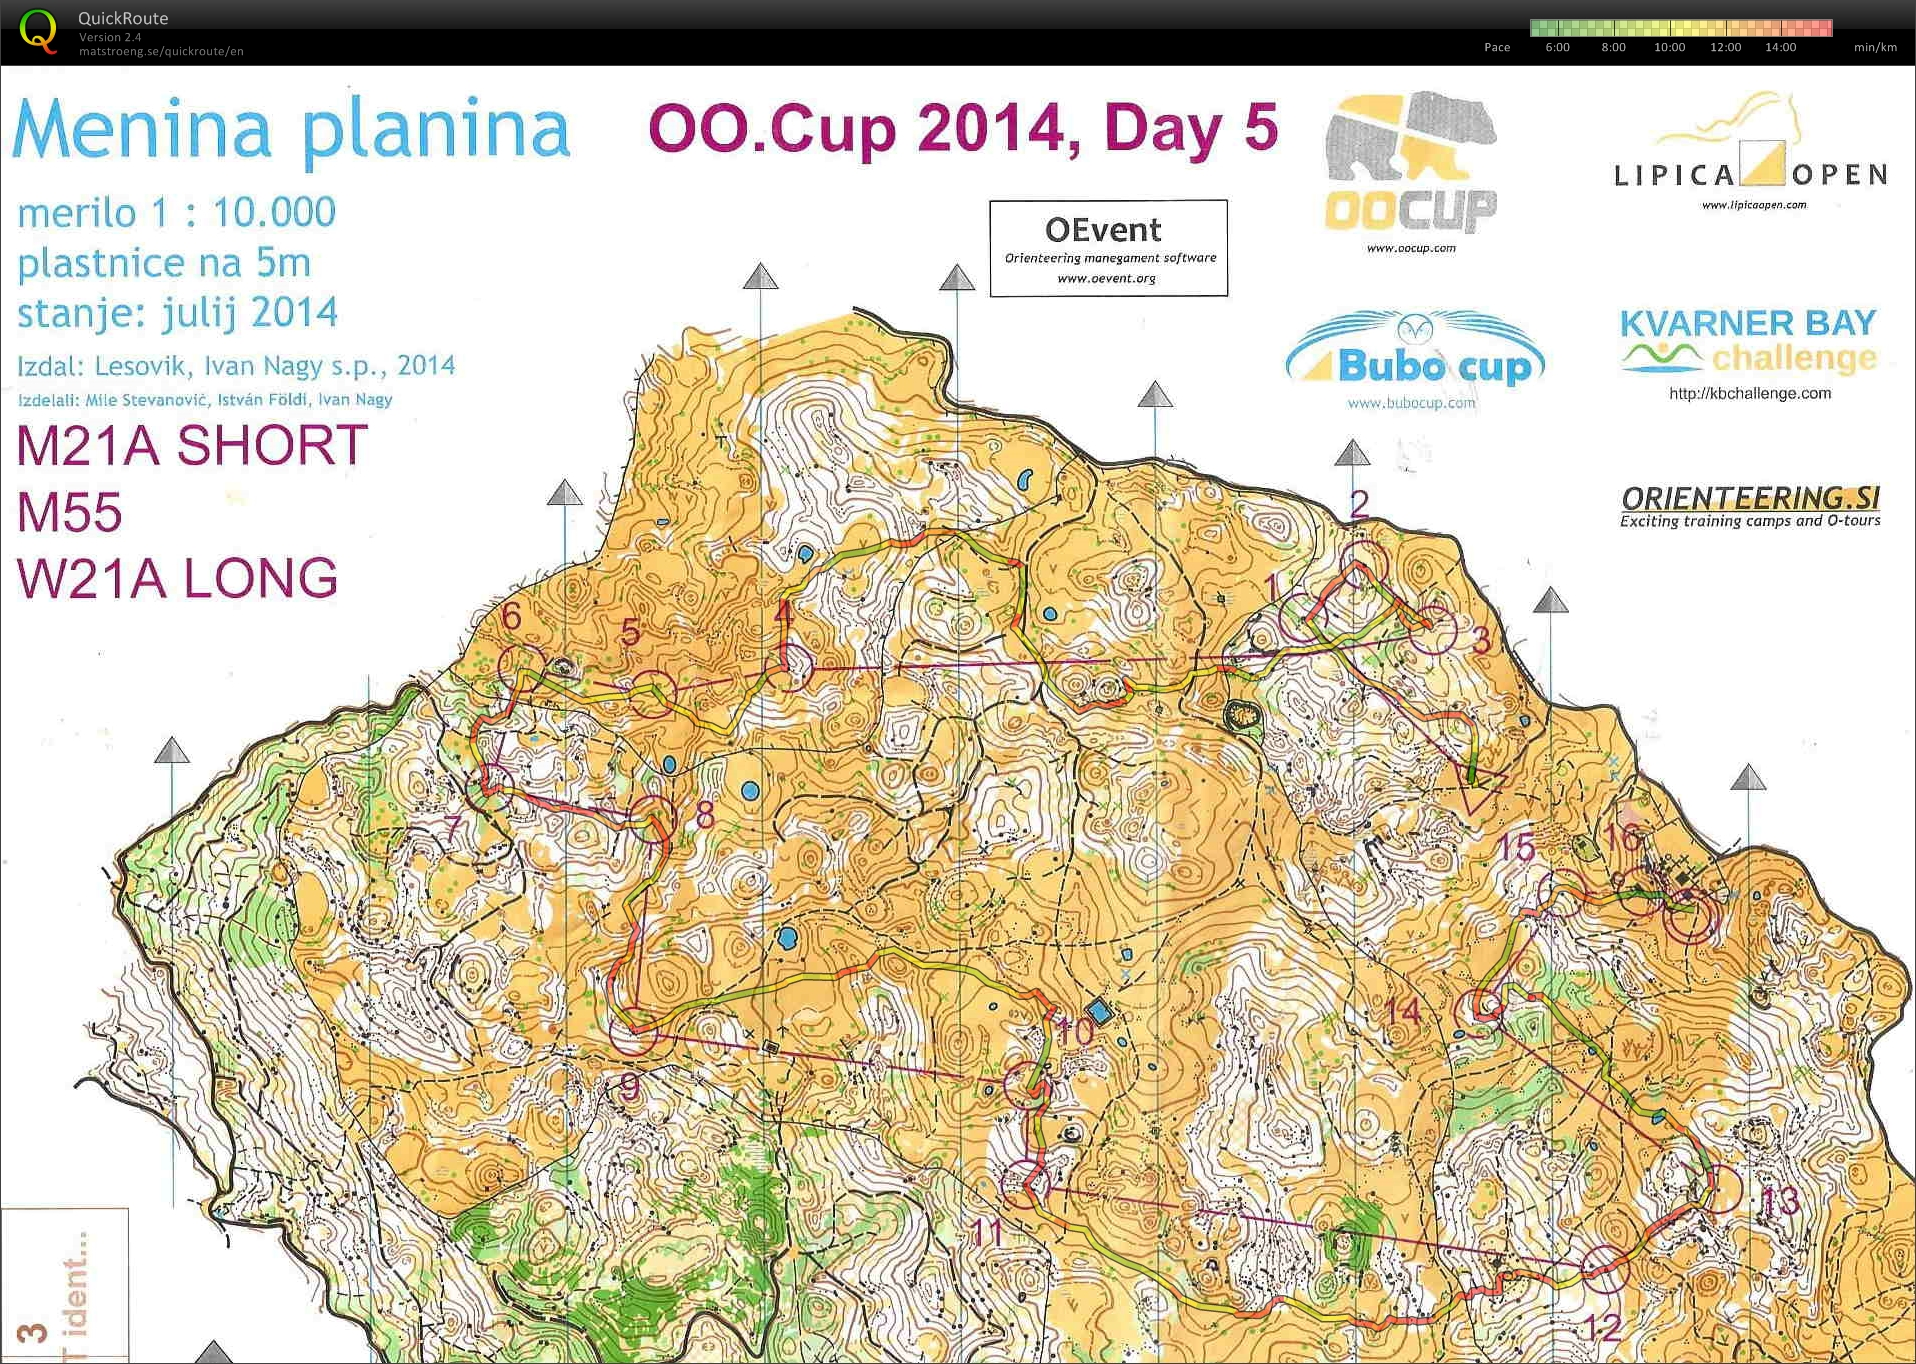 OOCup Day 5 (05/08/2014)